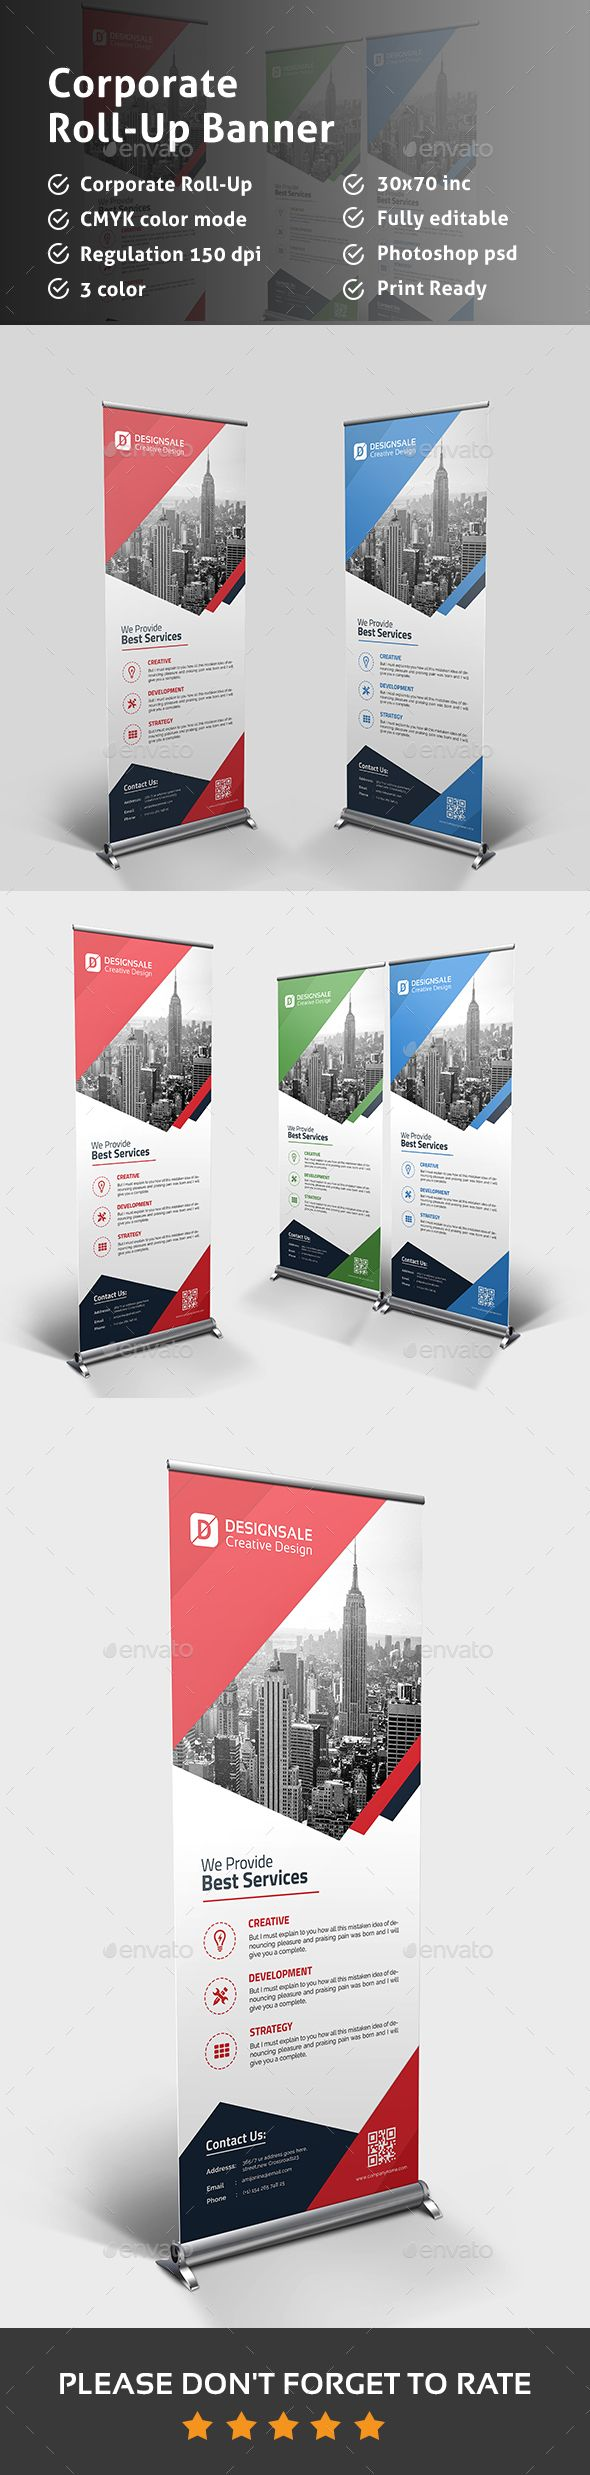 Corporate Rollup Banner — Photoshop PSD #professional #rollup • Available he...